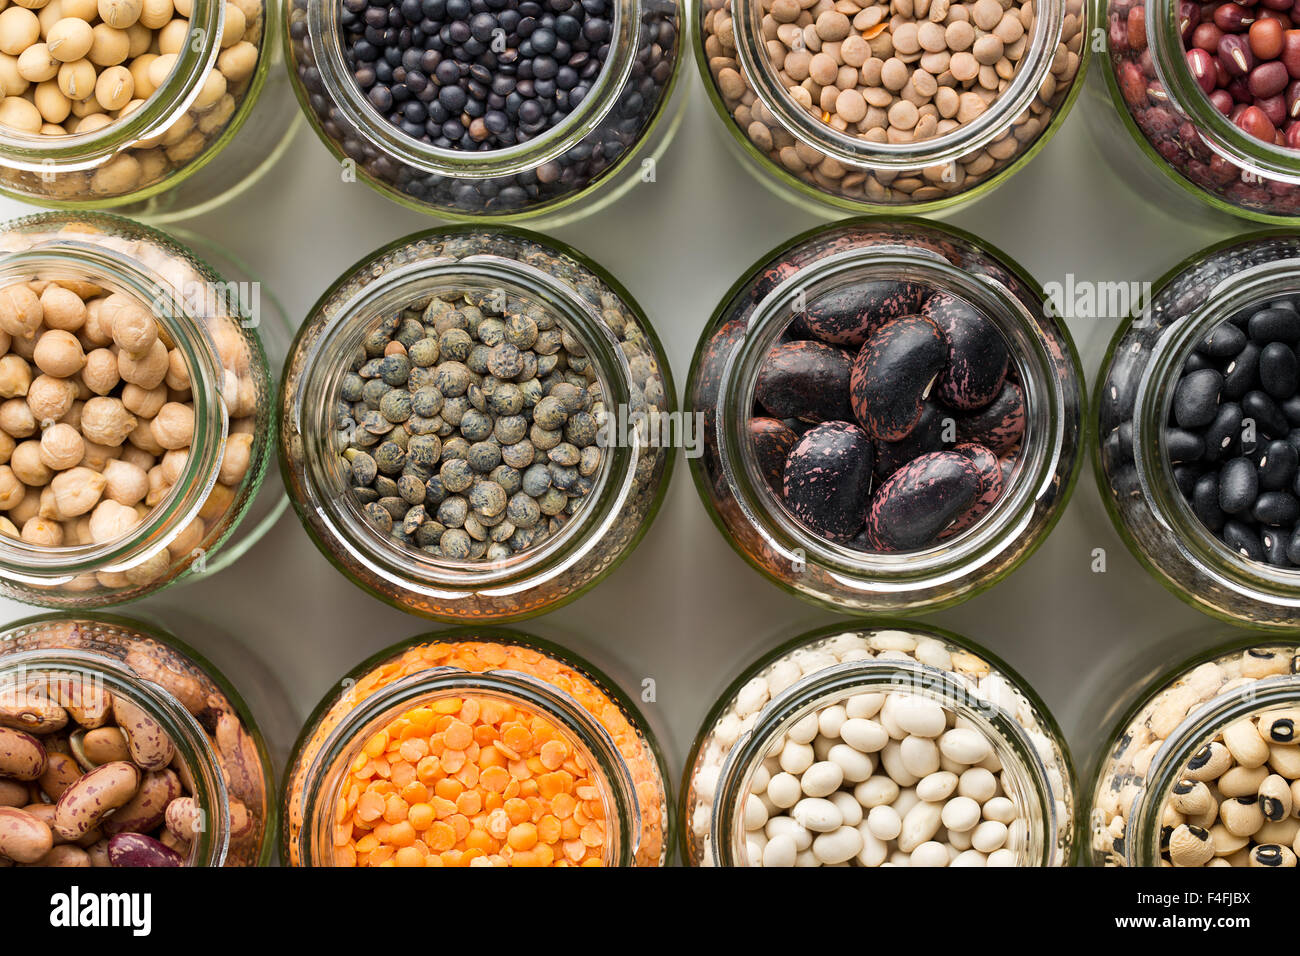 top view of various dried legumes in jars - Stock Image